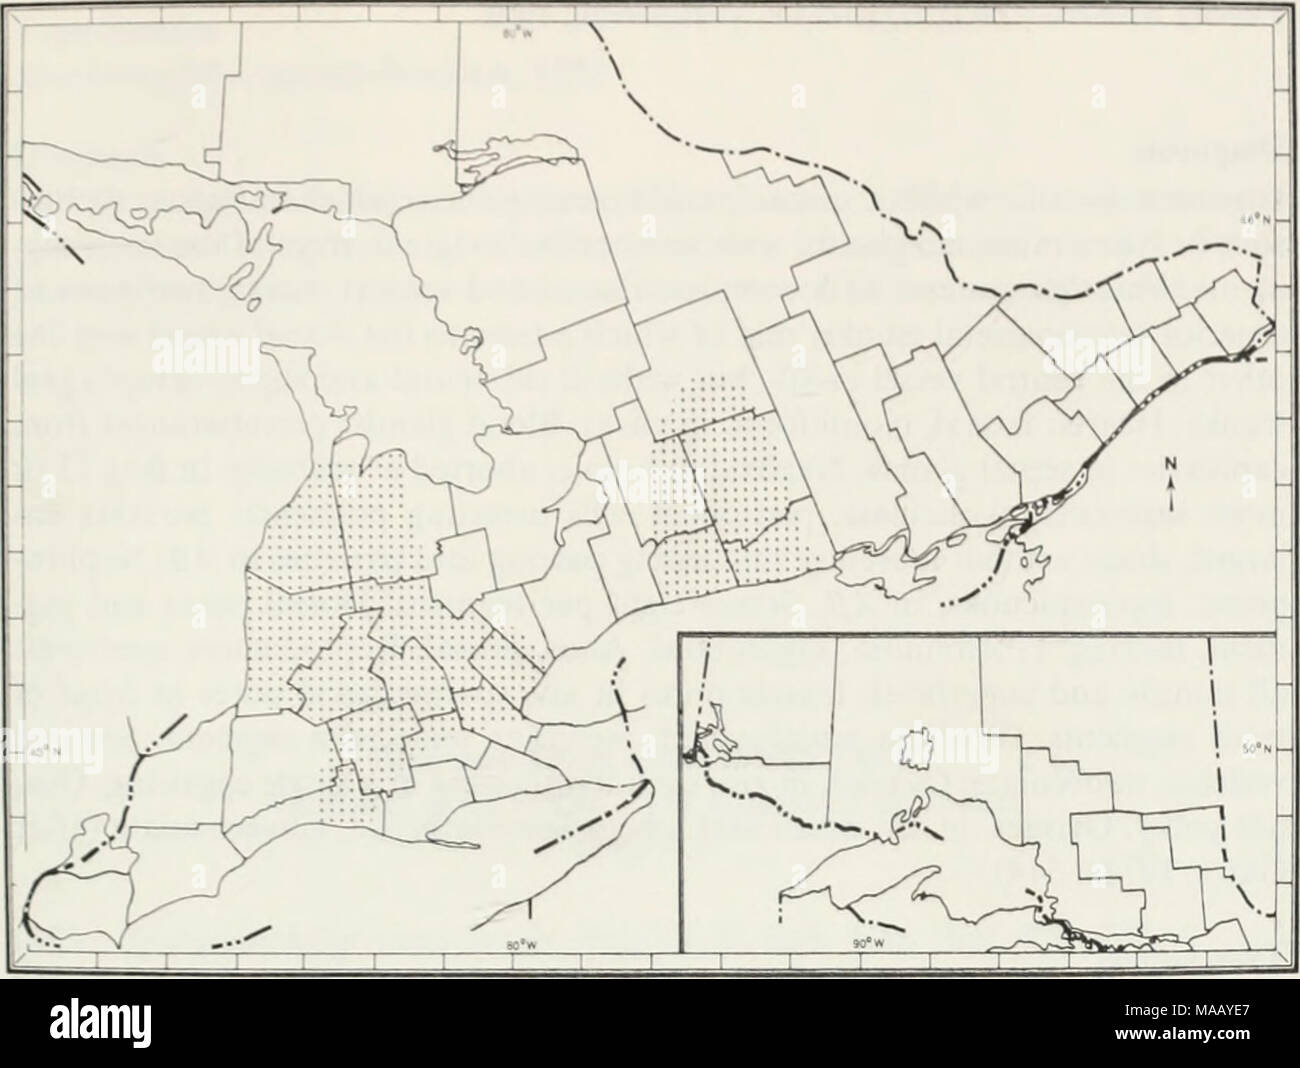 . The earthworms (lumbricidae and sparganophilidae) of Ontario . Fig. 39 The known Ontario distribution of Octolasion tyrtaeum. LAND CO. *Hwy 45. 4.84 km n of Baltimore, under logs, 28 Apr 72, JWR, 1-4-1. OXFORD CO. •Hwy 97, Washington, w.e., under logs, 3 May 72, JWR, 0-1-3. PEEL CO. *Hwy 5, .81 km e of Dixie Rd. under logs. 29 Apr 72, JWR. 0-1-1. PETERBOROUGH CO. *Hwy 28, Lakefield College, under logs near waterfront, 27 Apr 72, JWR & CWR, 4-5-8. VICTORIA CO. *Hwy 7, 7.26 km e of Hwj 35. under log, 26 Apr 72, JWR, 0-3-1. WATERLOO CO. *Hwy 24A, 11.45 km n of Pans, un- der log, 3 May 72, J - Stock Image